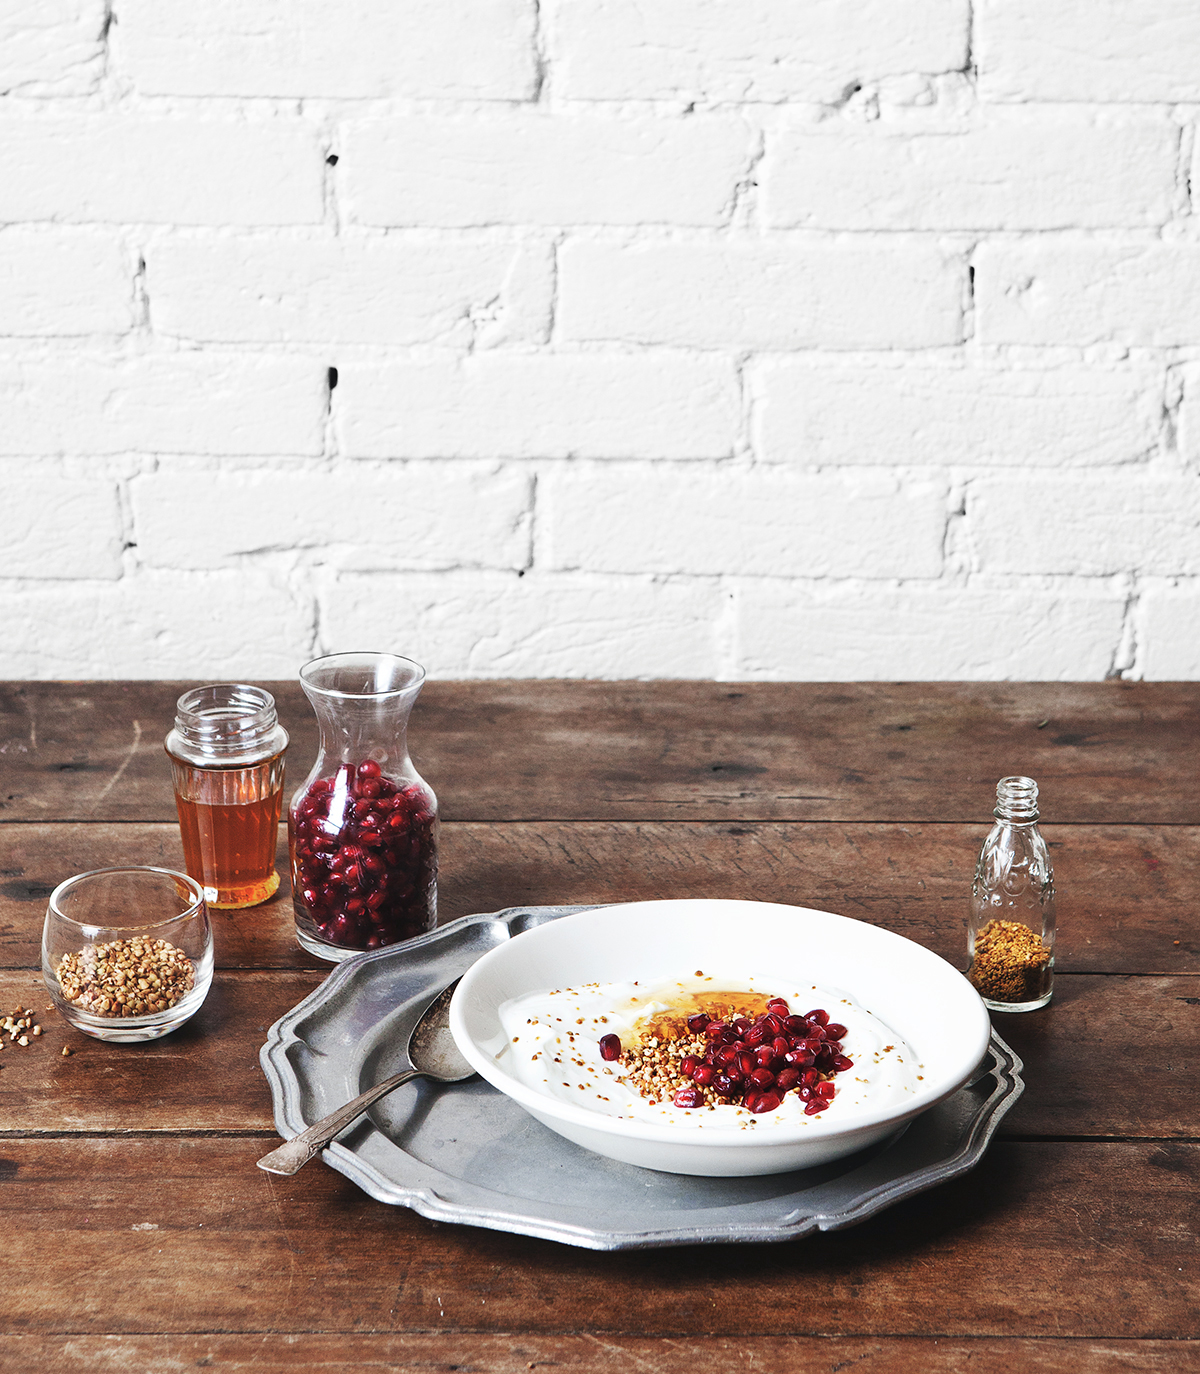 Toasted-Buckwheat-and-Pomegranate-Breakfast-Bowl_001.jpg